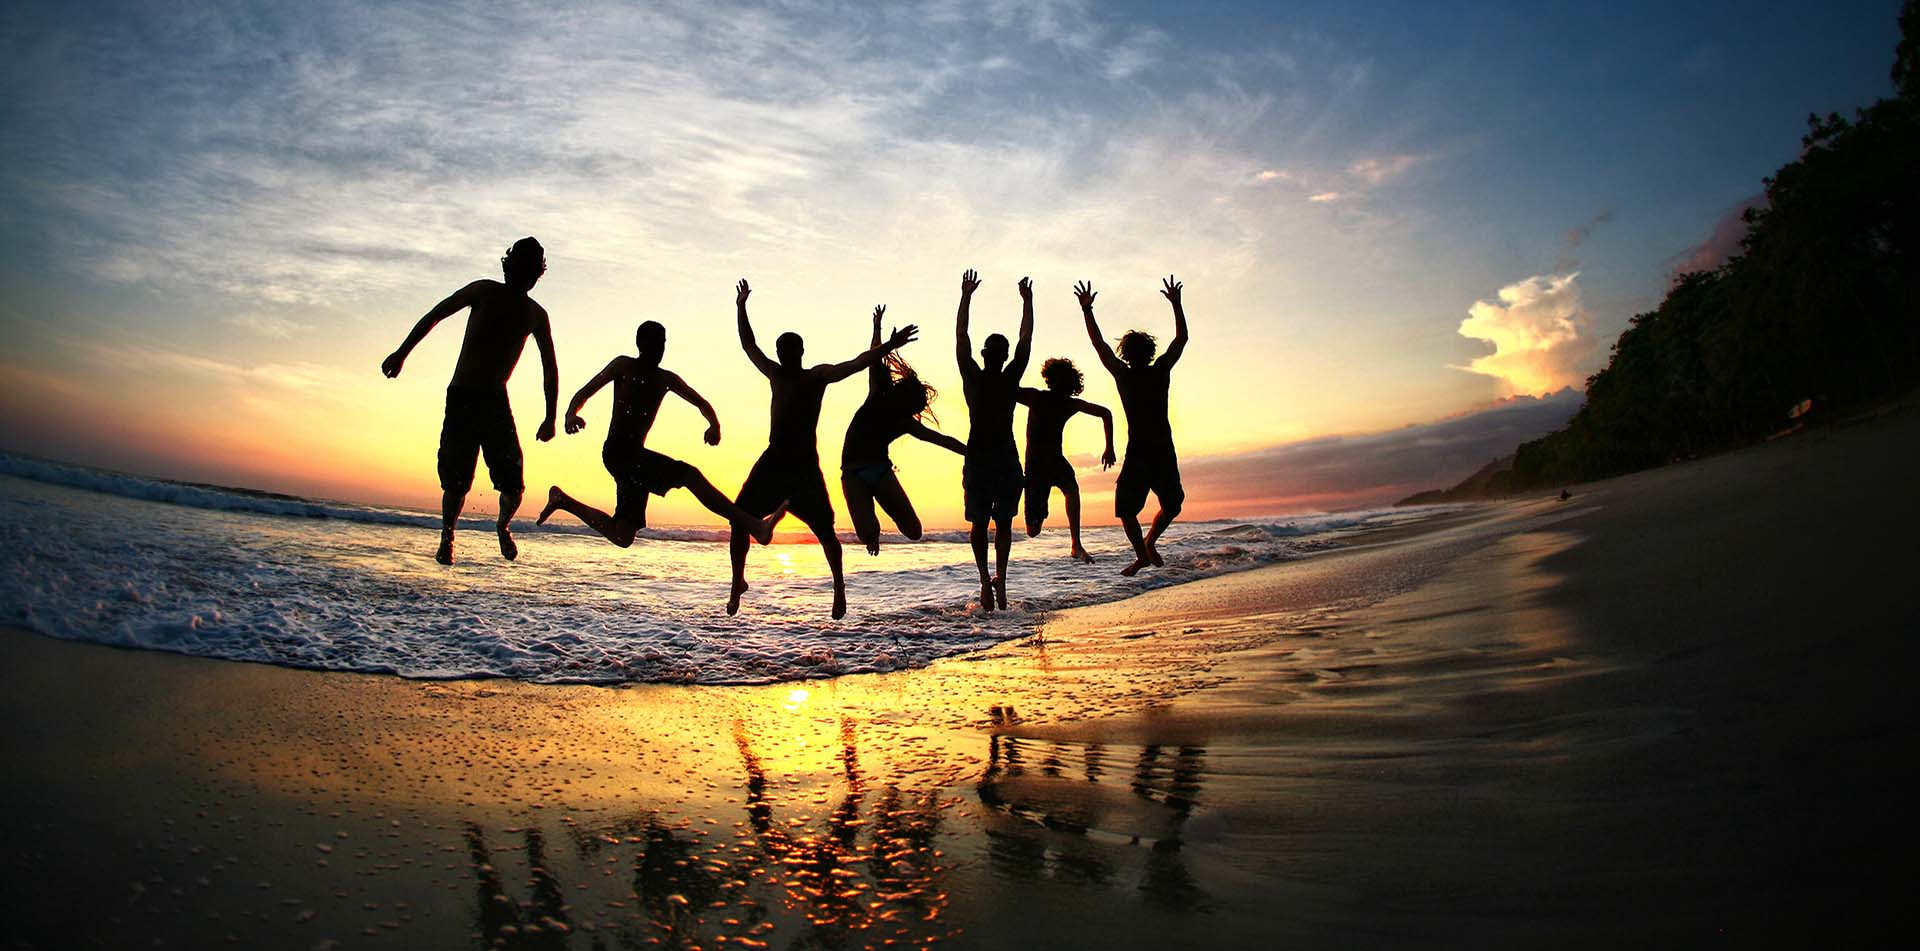 North America United States Hawaii happy group jumping pretty sunset scenic ocean beach - luxury vacation destinations